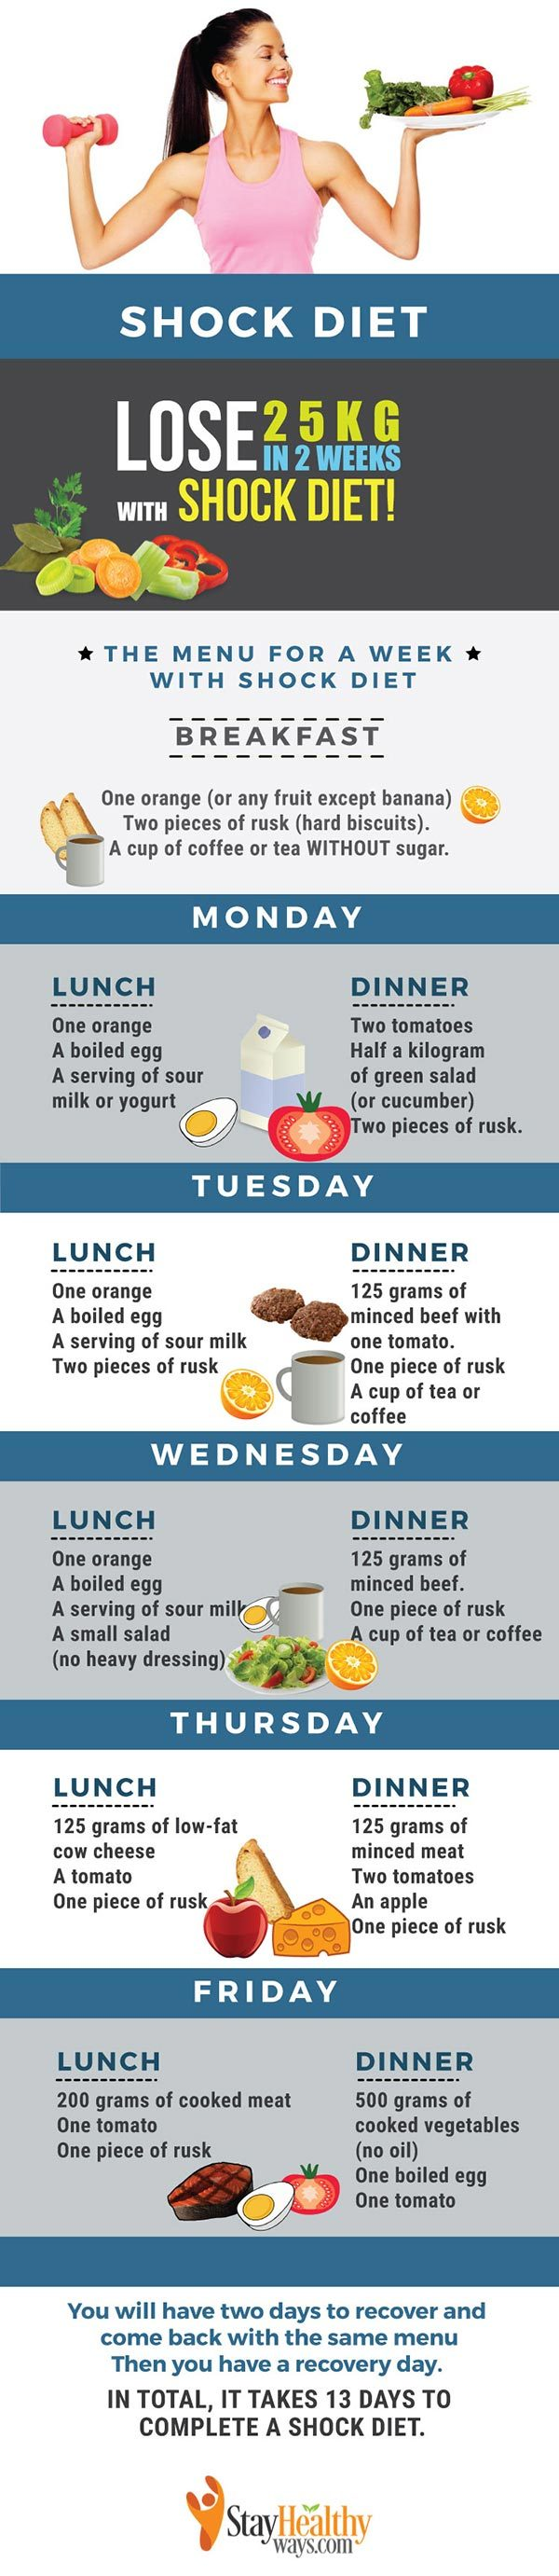 shock diet infographic